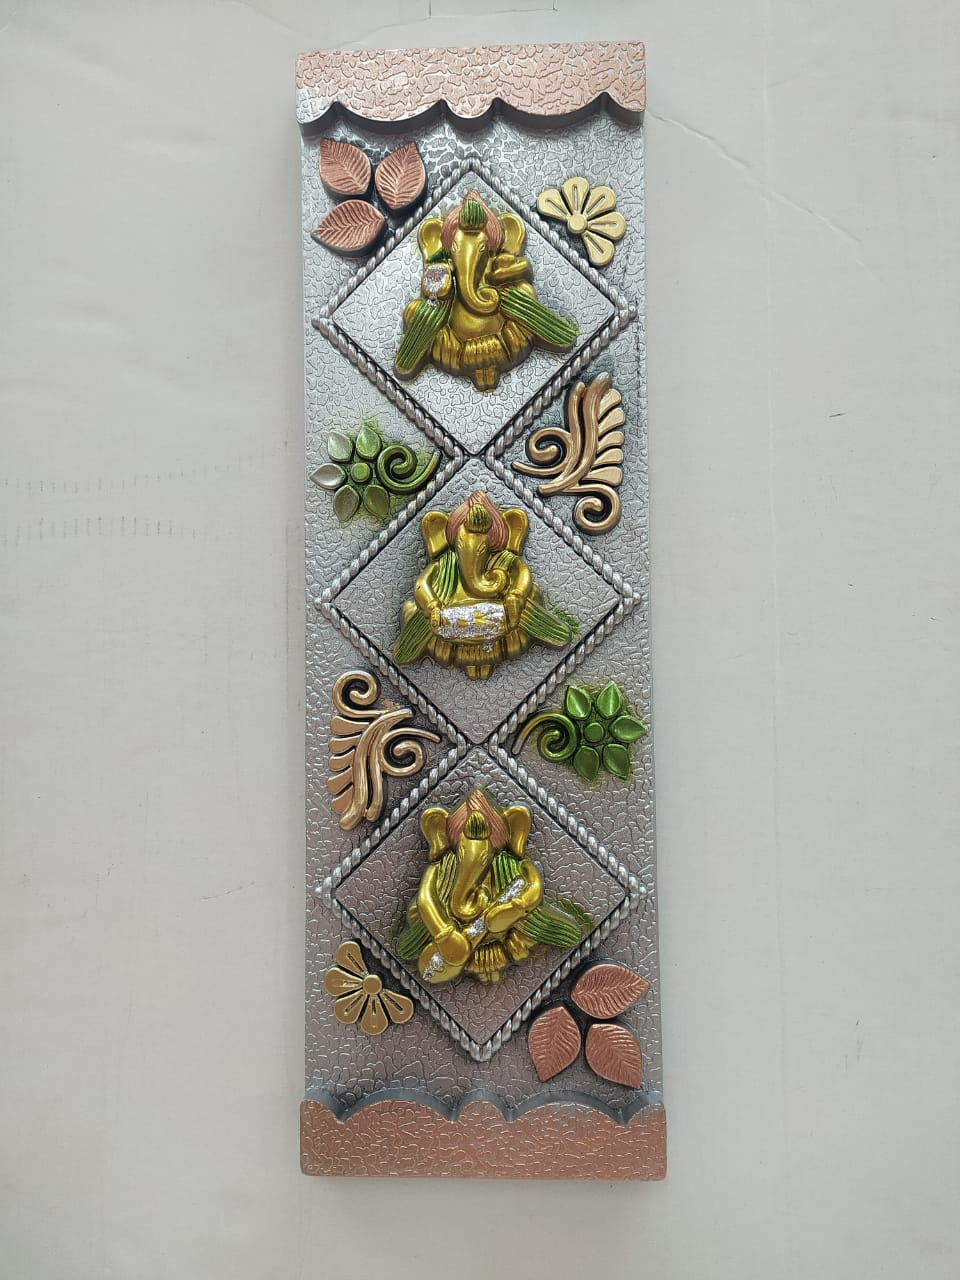 Buy Wall hanging with Ganesha and floral design (NY133)Online